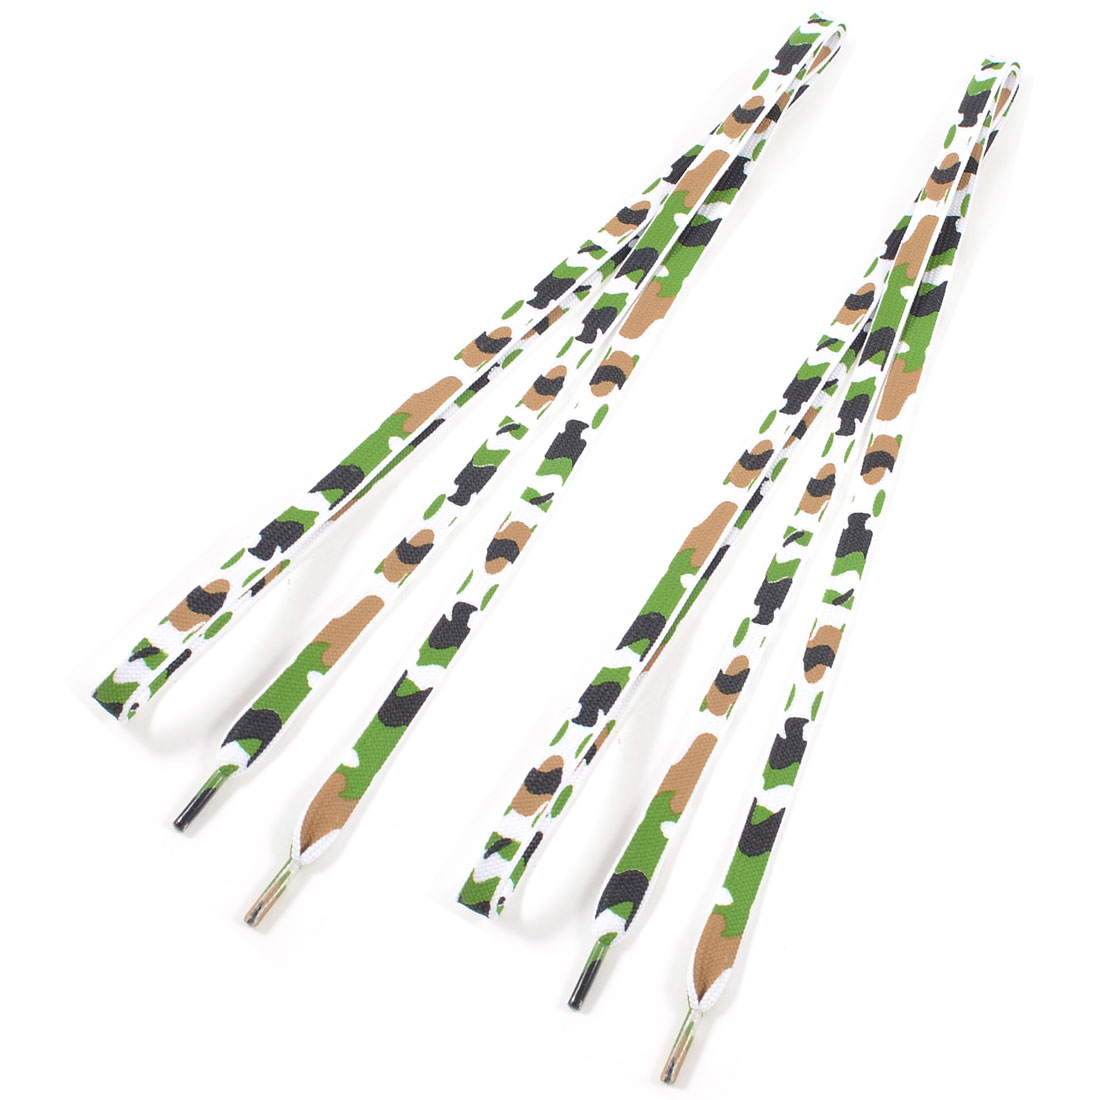 Unisex Black Green White Camouflage Print Flat Shoelaces Pair